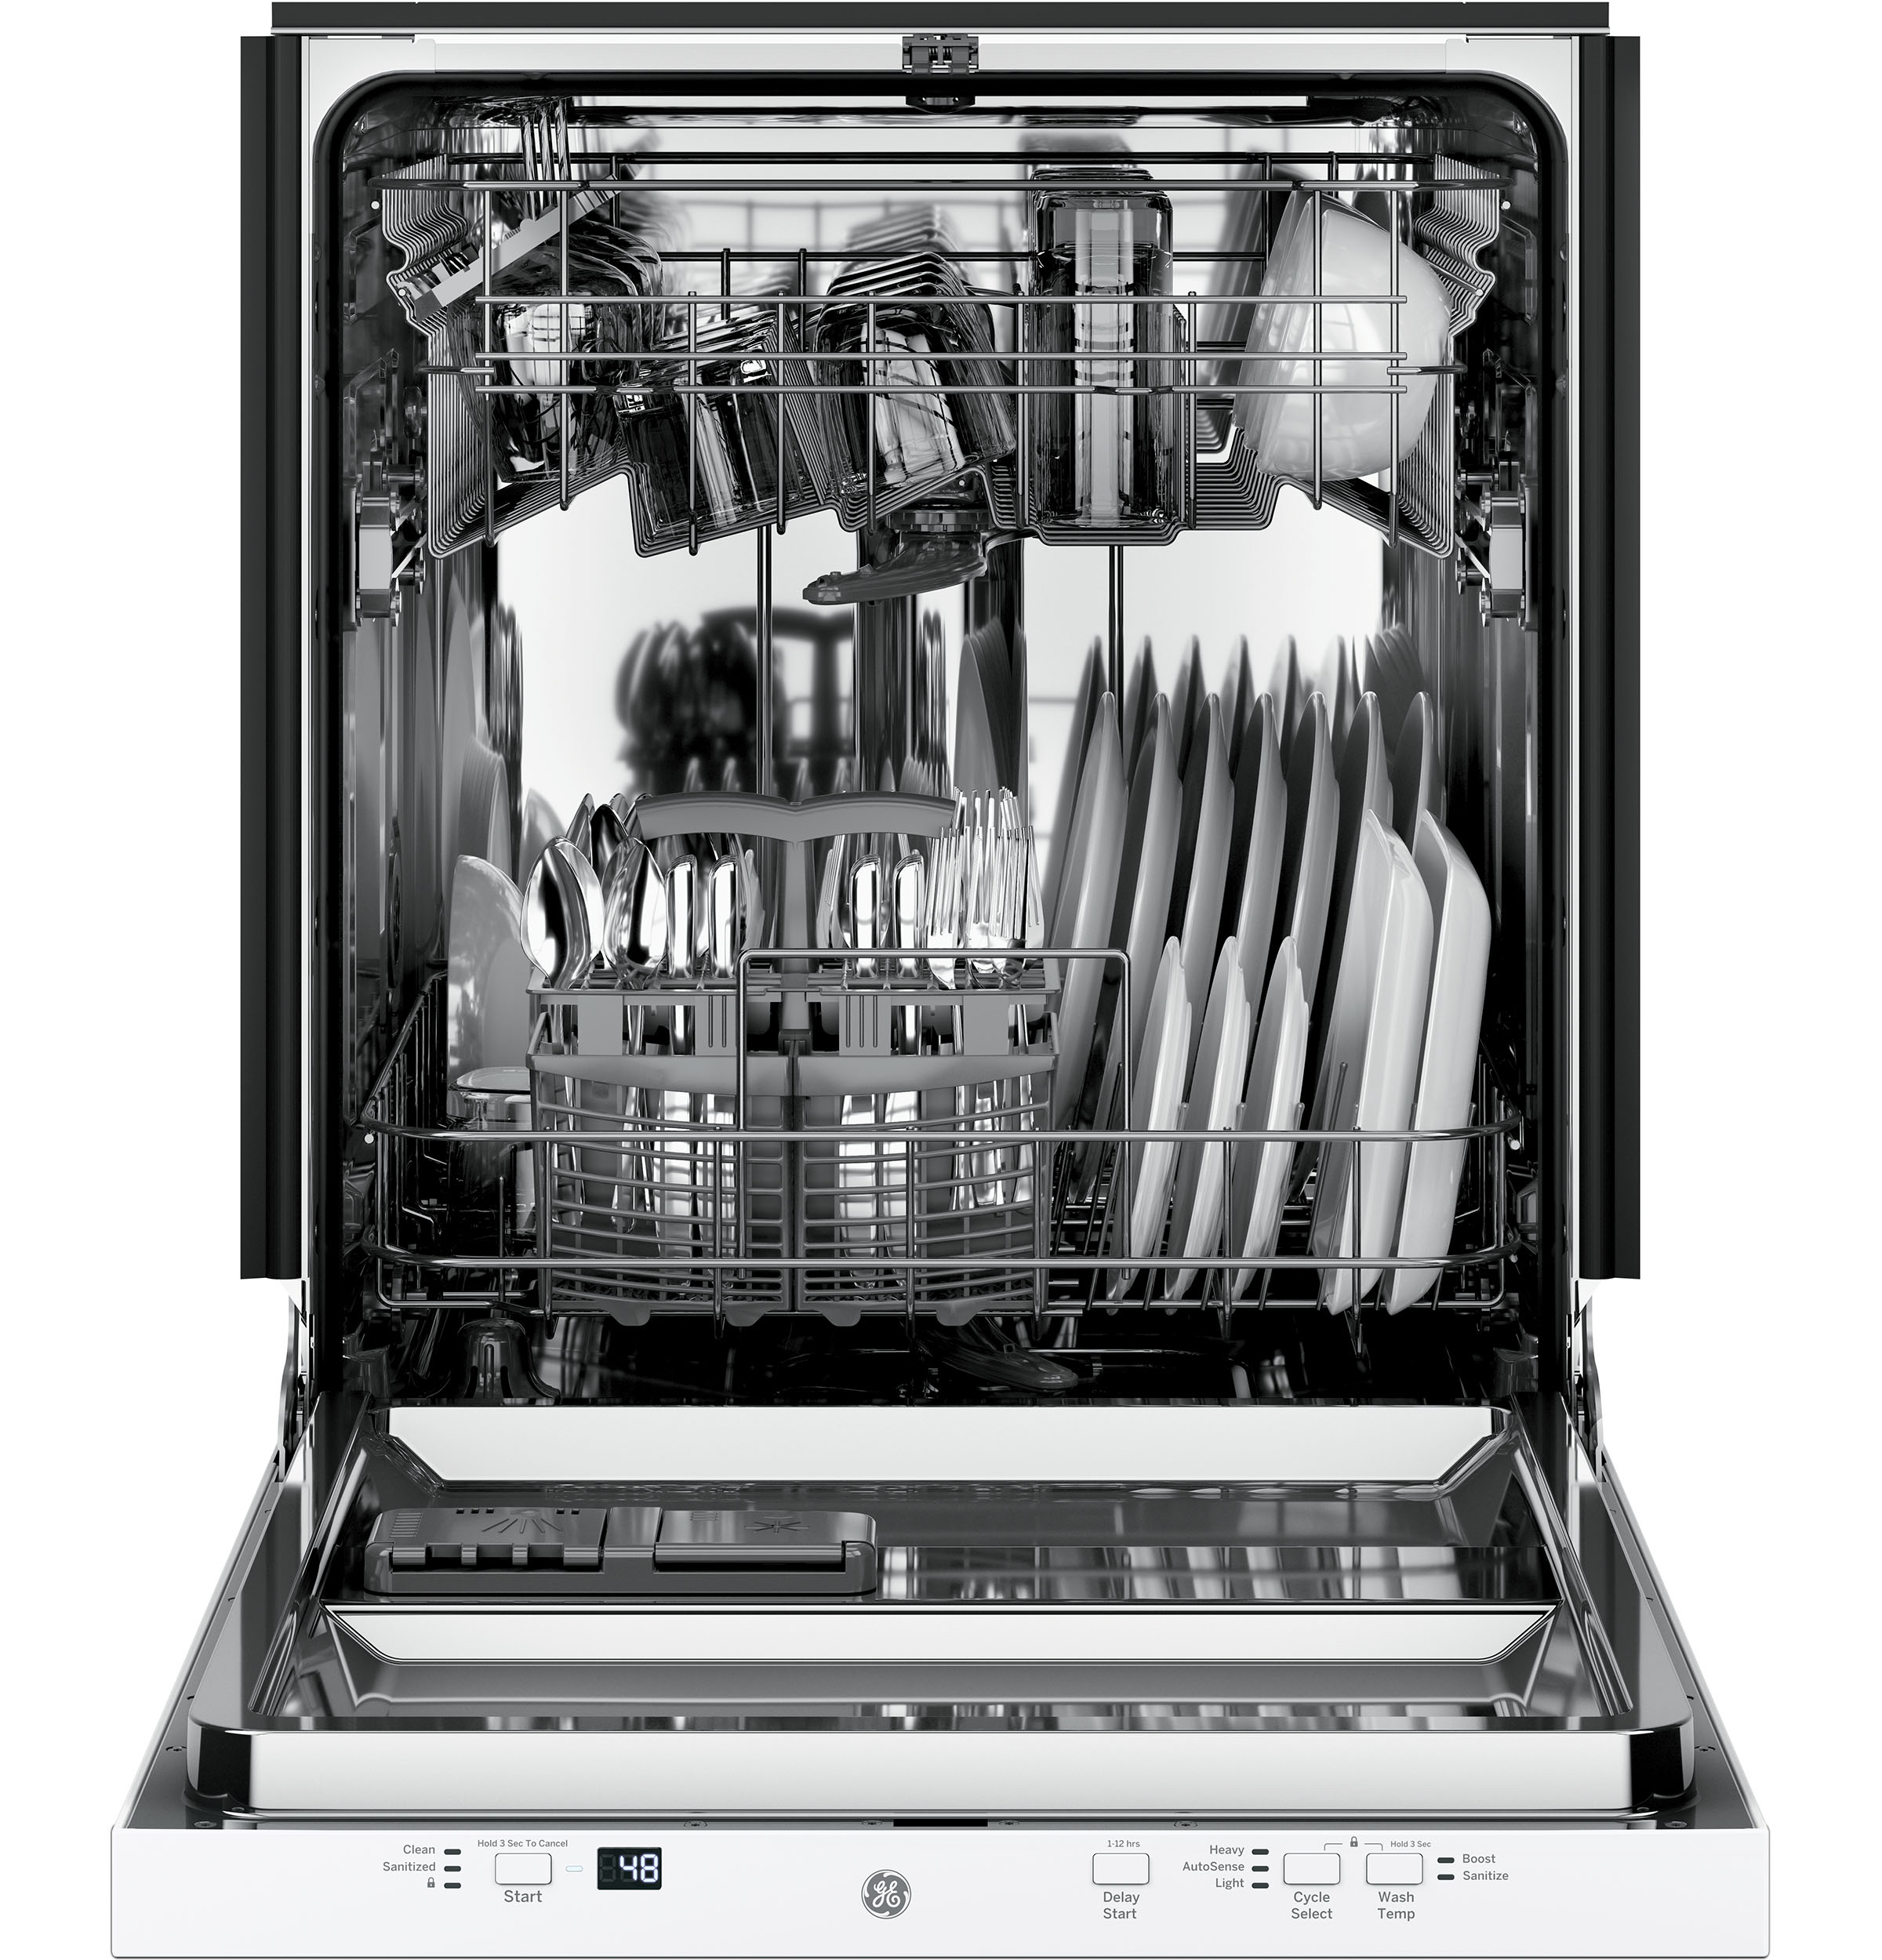 Model: GDT225SGLWW | GE GE® ADA Compliant Stainless Steel Interior Dishwasher with Sanitize Cycle